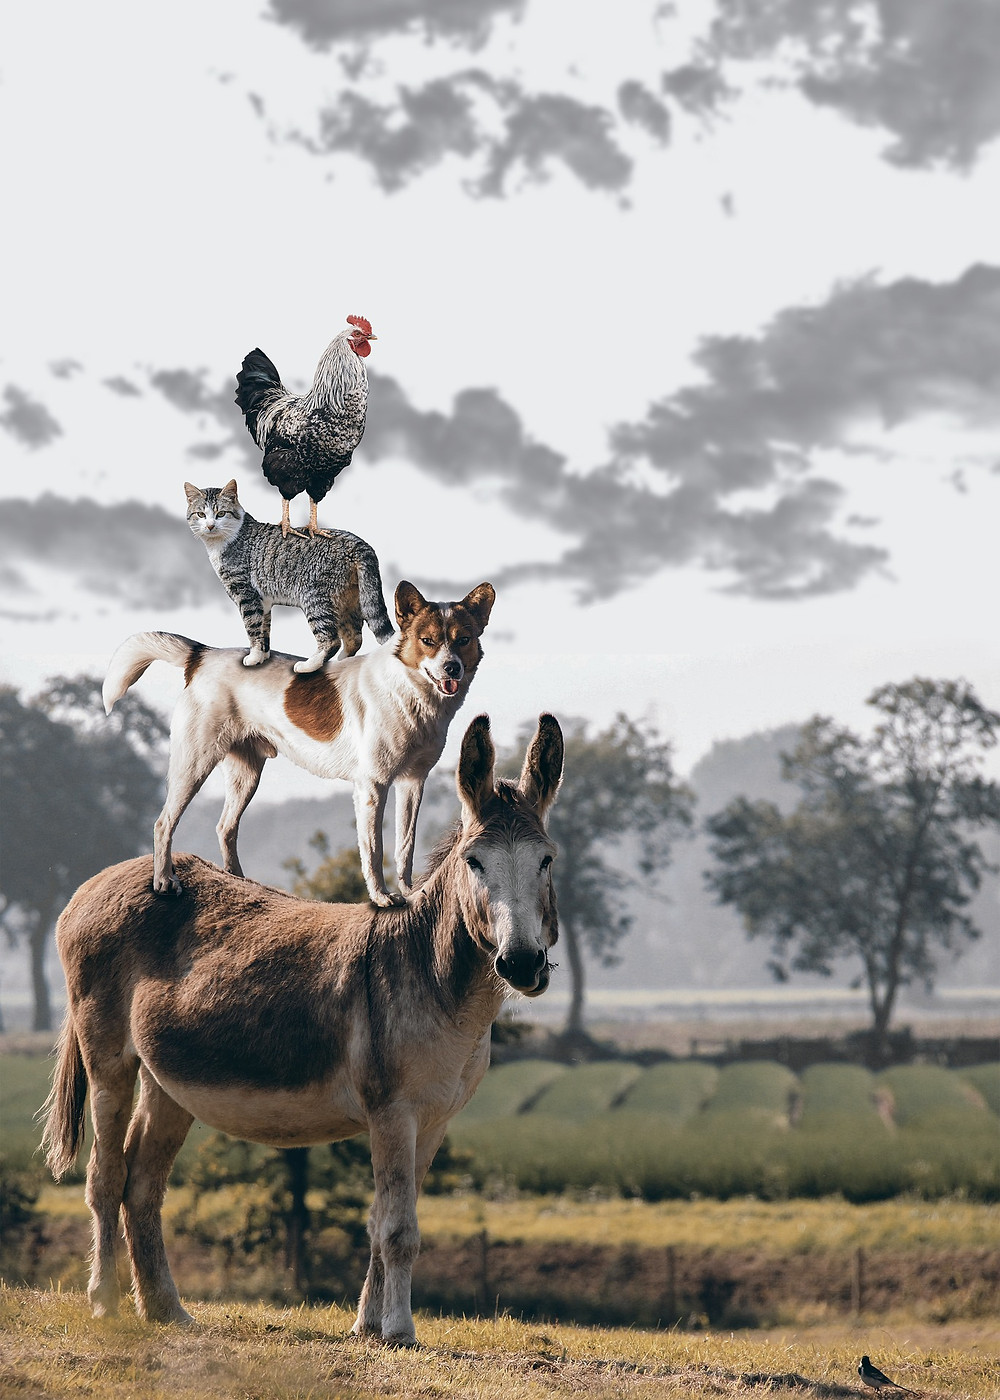 Donkey, Dog, Cat, Rooster standing on each other in a pyramid